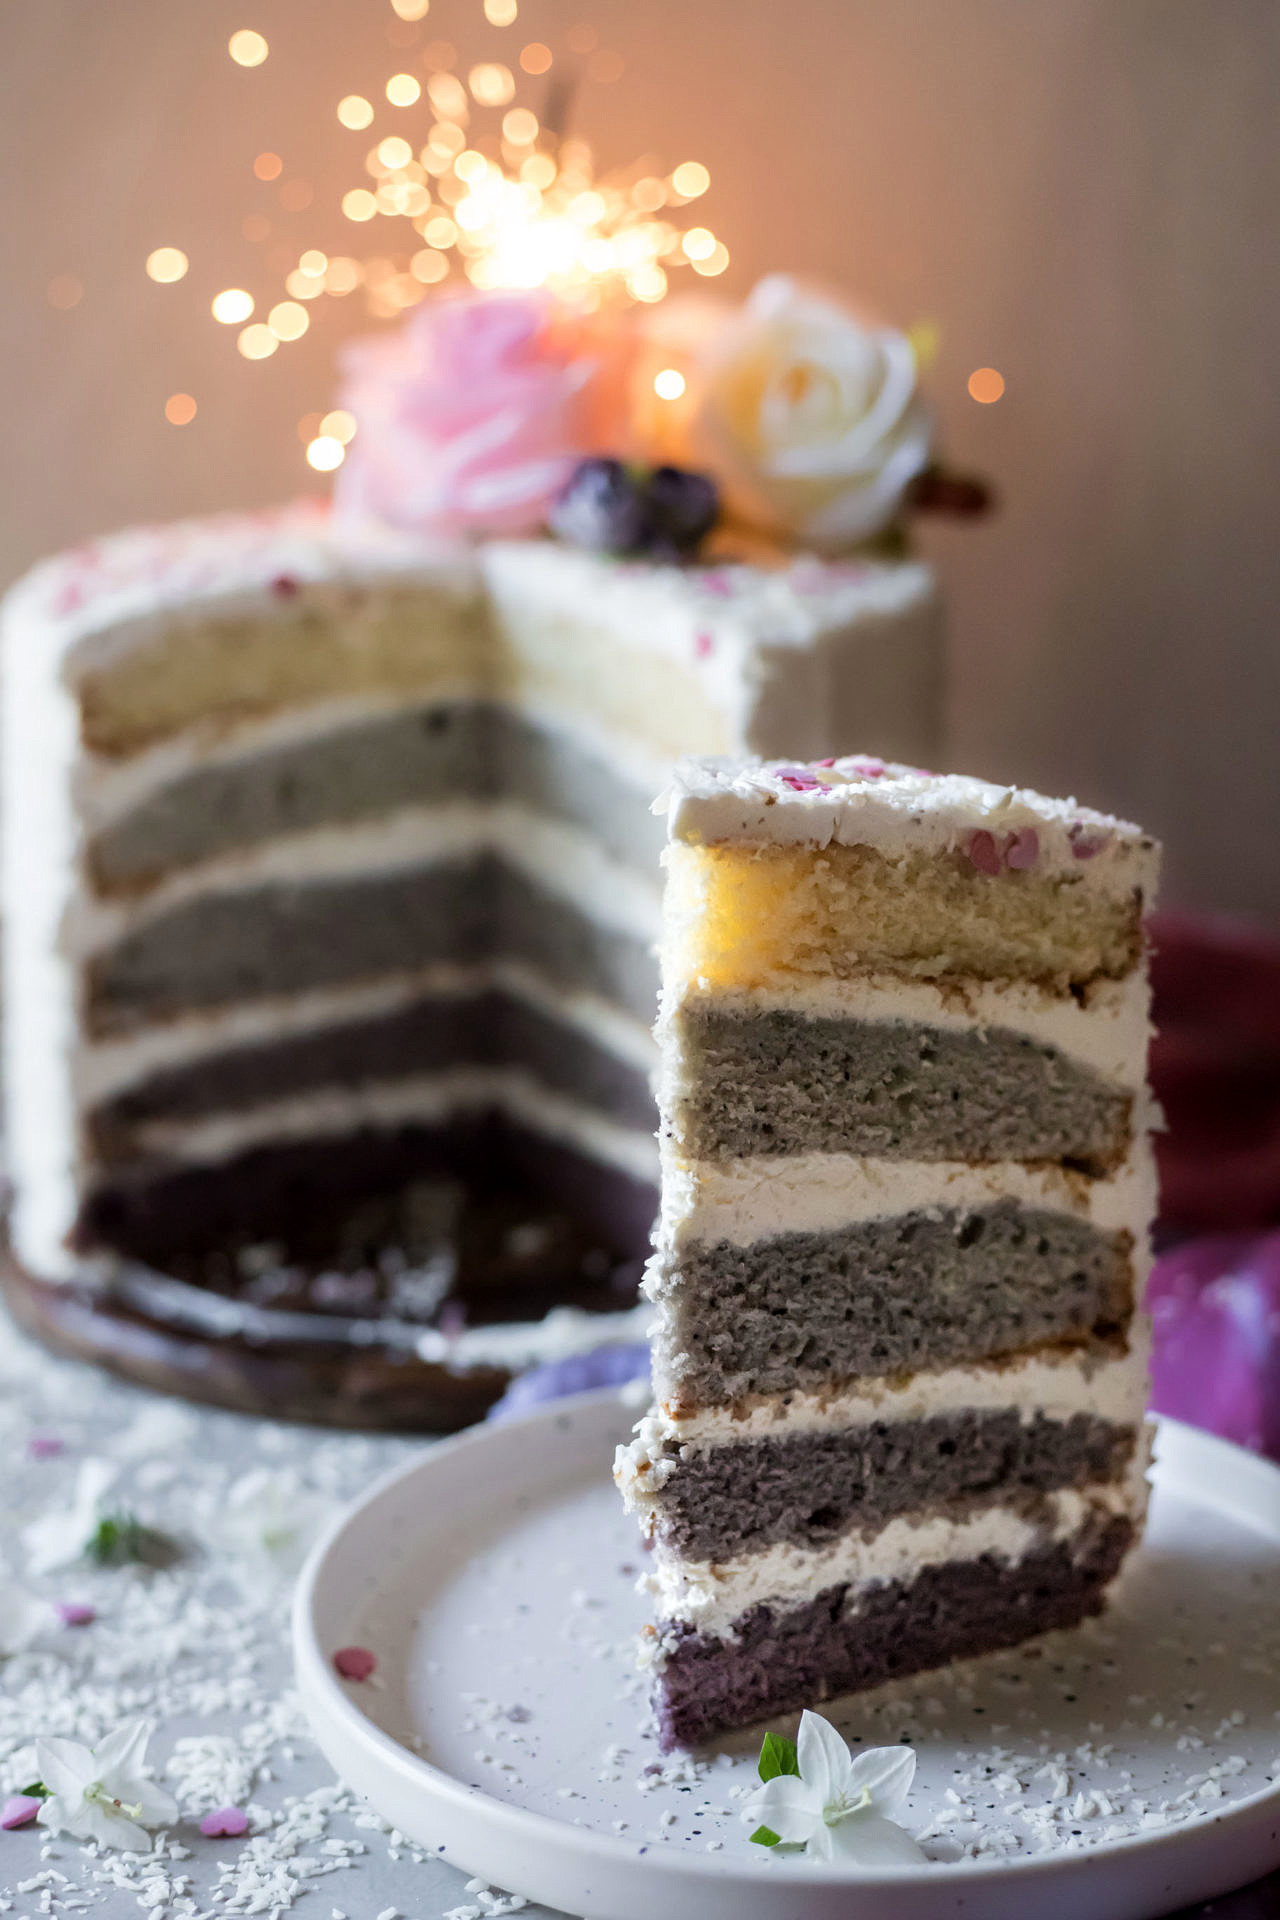 Gluten Free Blueberry Ombre Cake (Free from artificial colors). This cake is so luxurious, super pretty and beyond delicious. With a perfectly soft and tender texture and silky frosting.